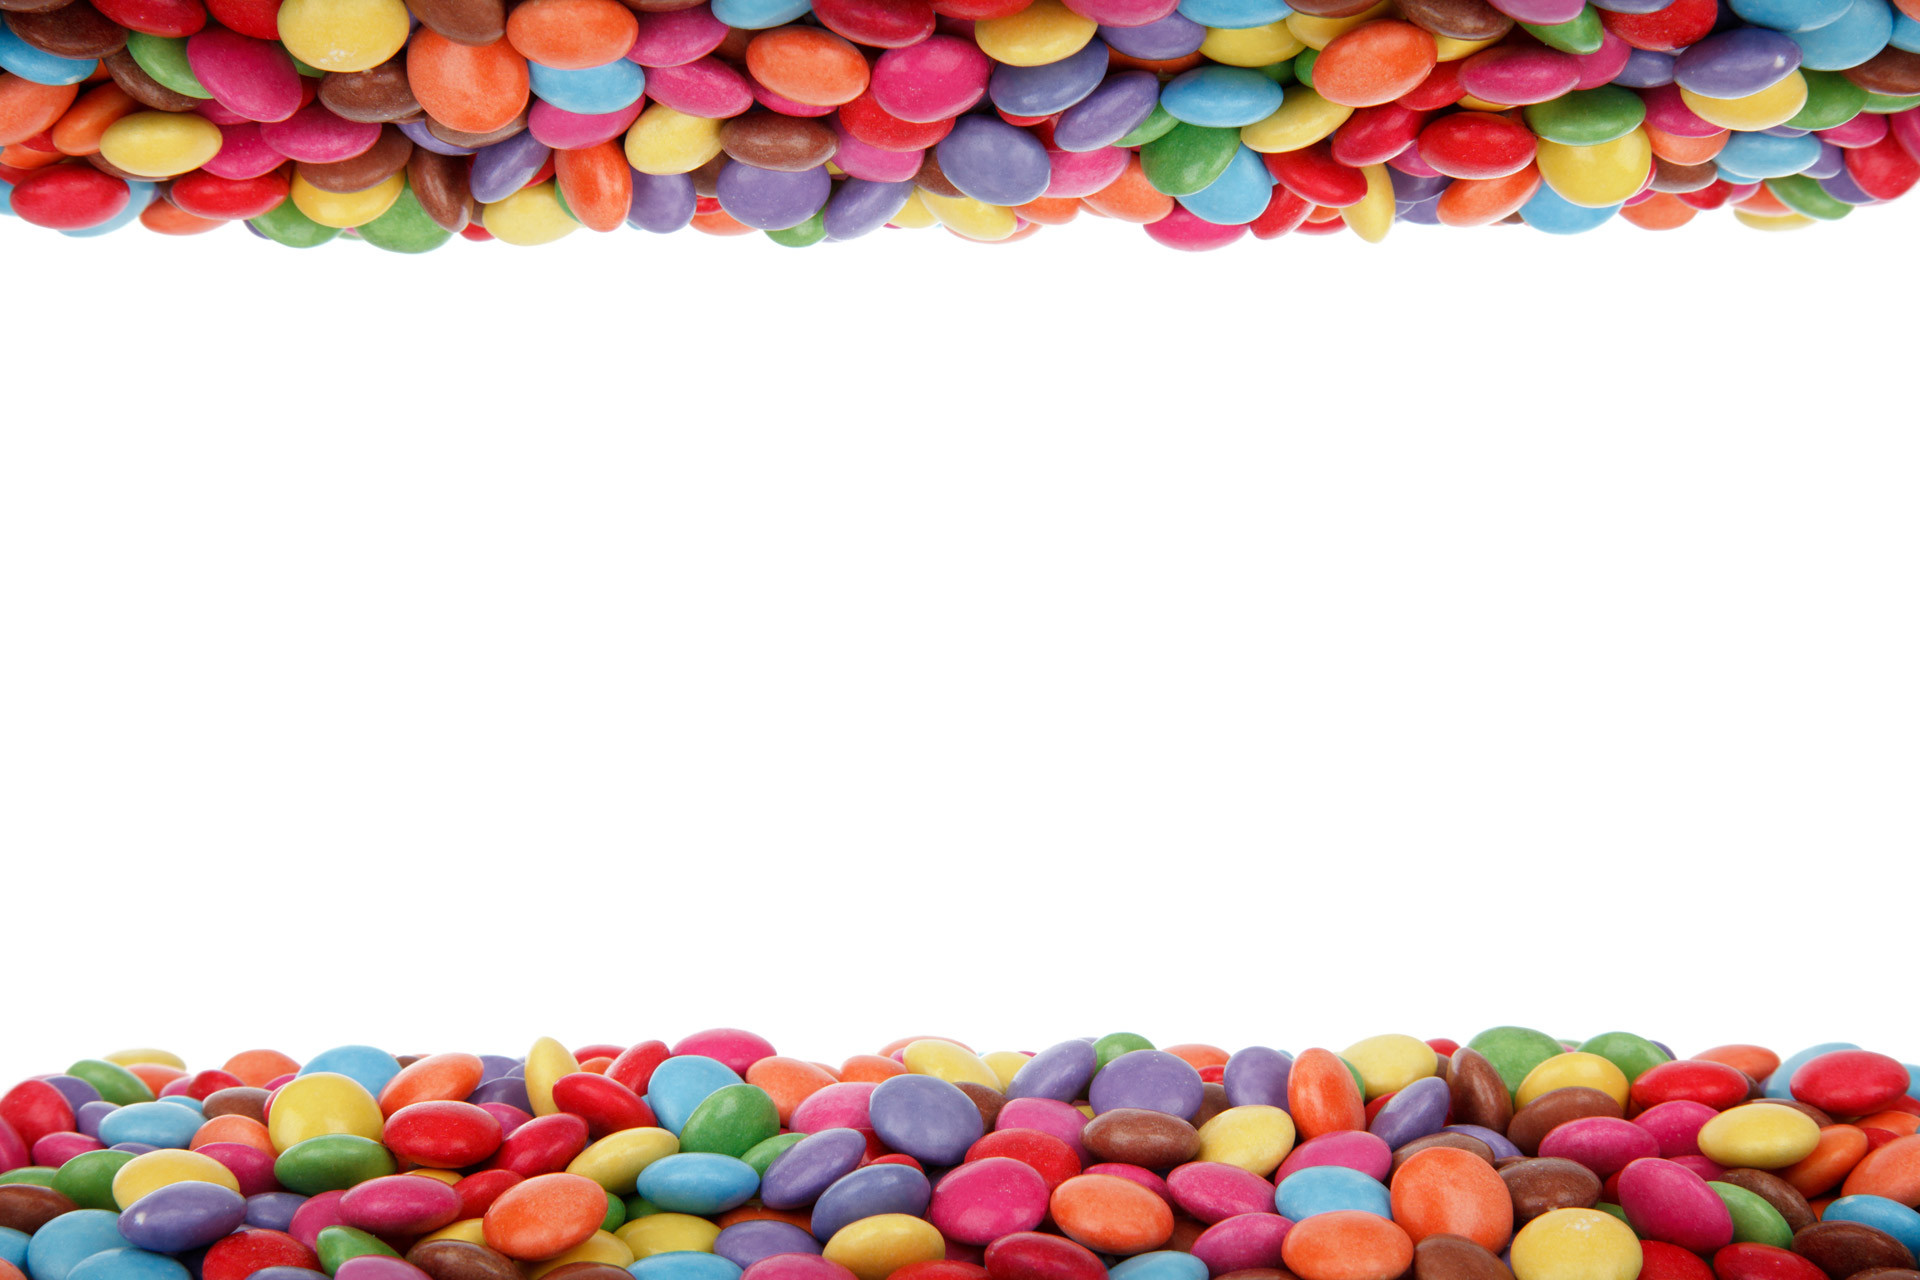 1920x1280 Candy wallpapers